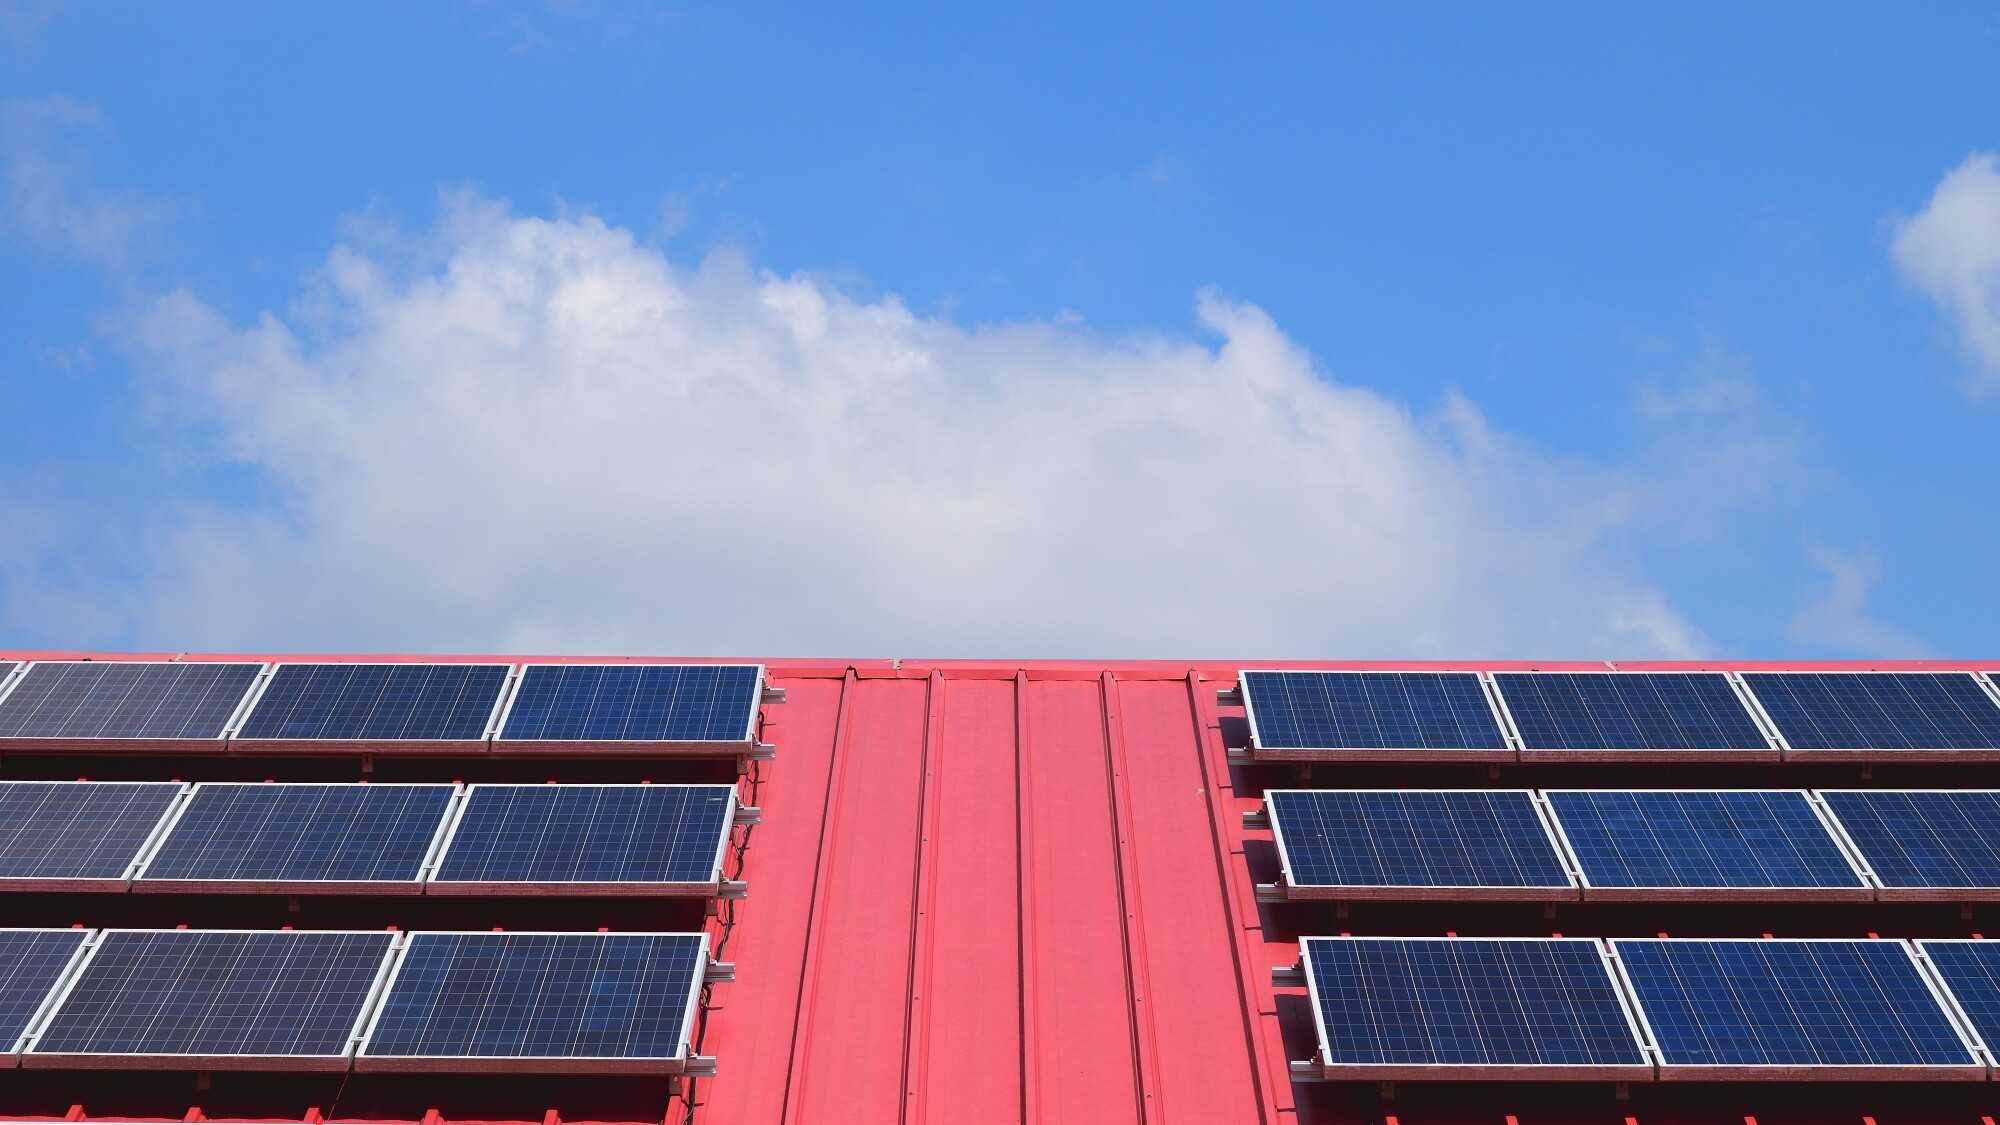 5 Reasons to Consider Solar Panel Roofing on Your Commercial Building